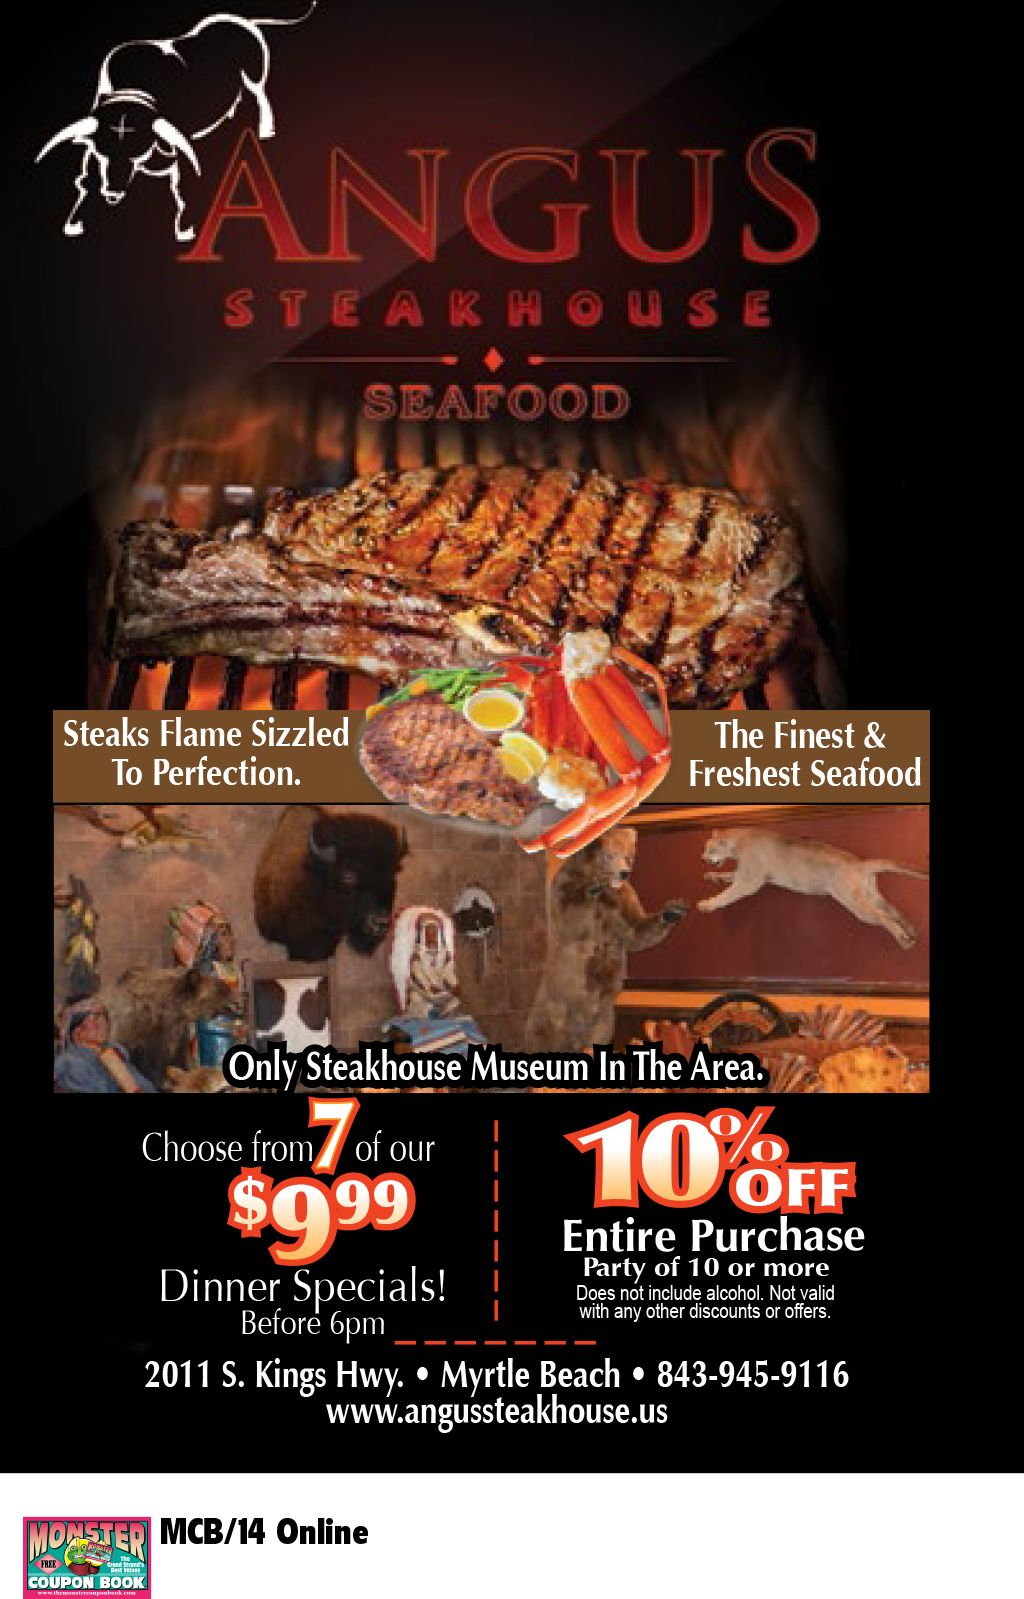 Angus Steakhouse And Seafood Myrtle Beach Resorts